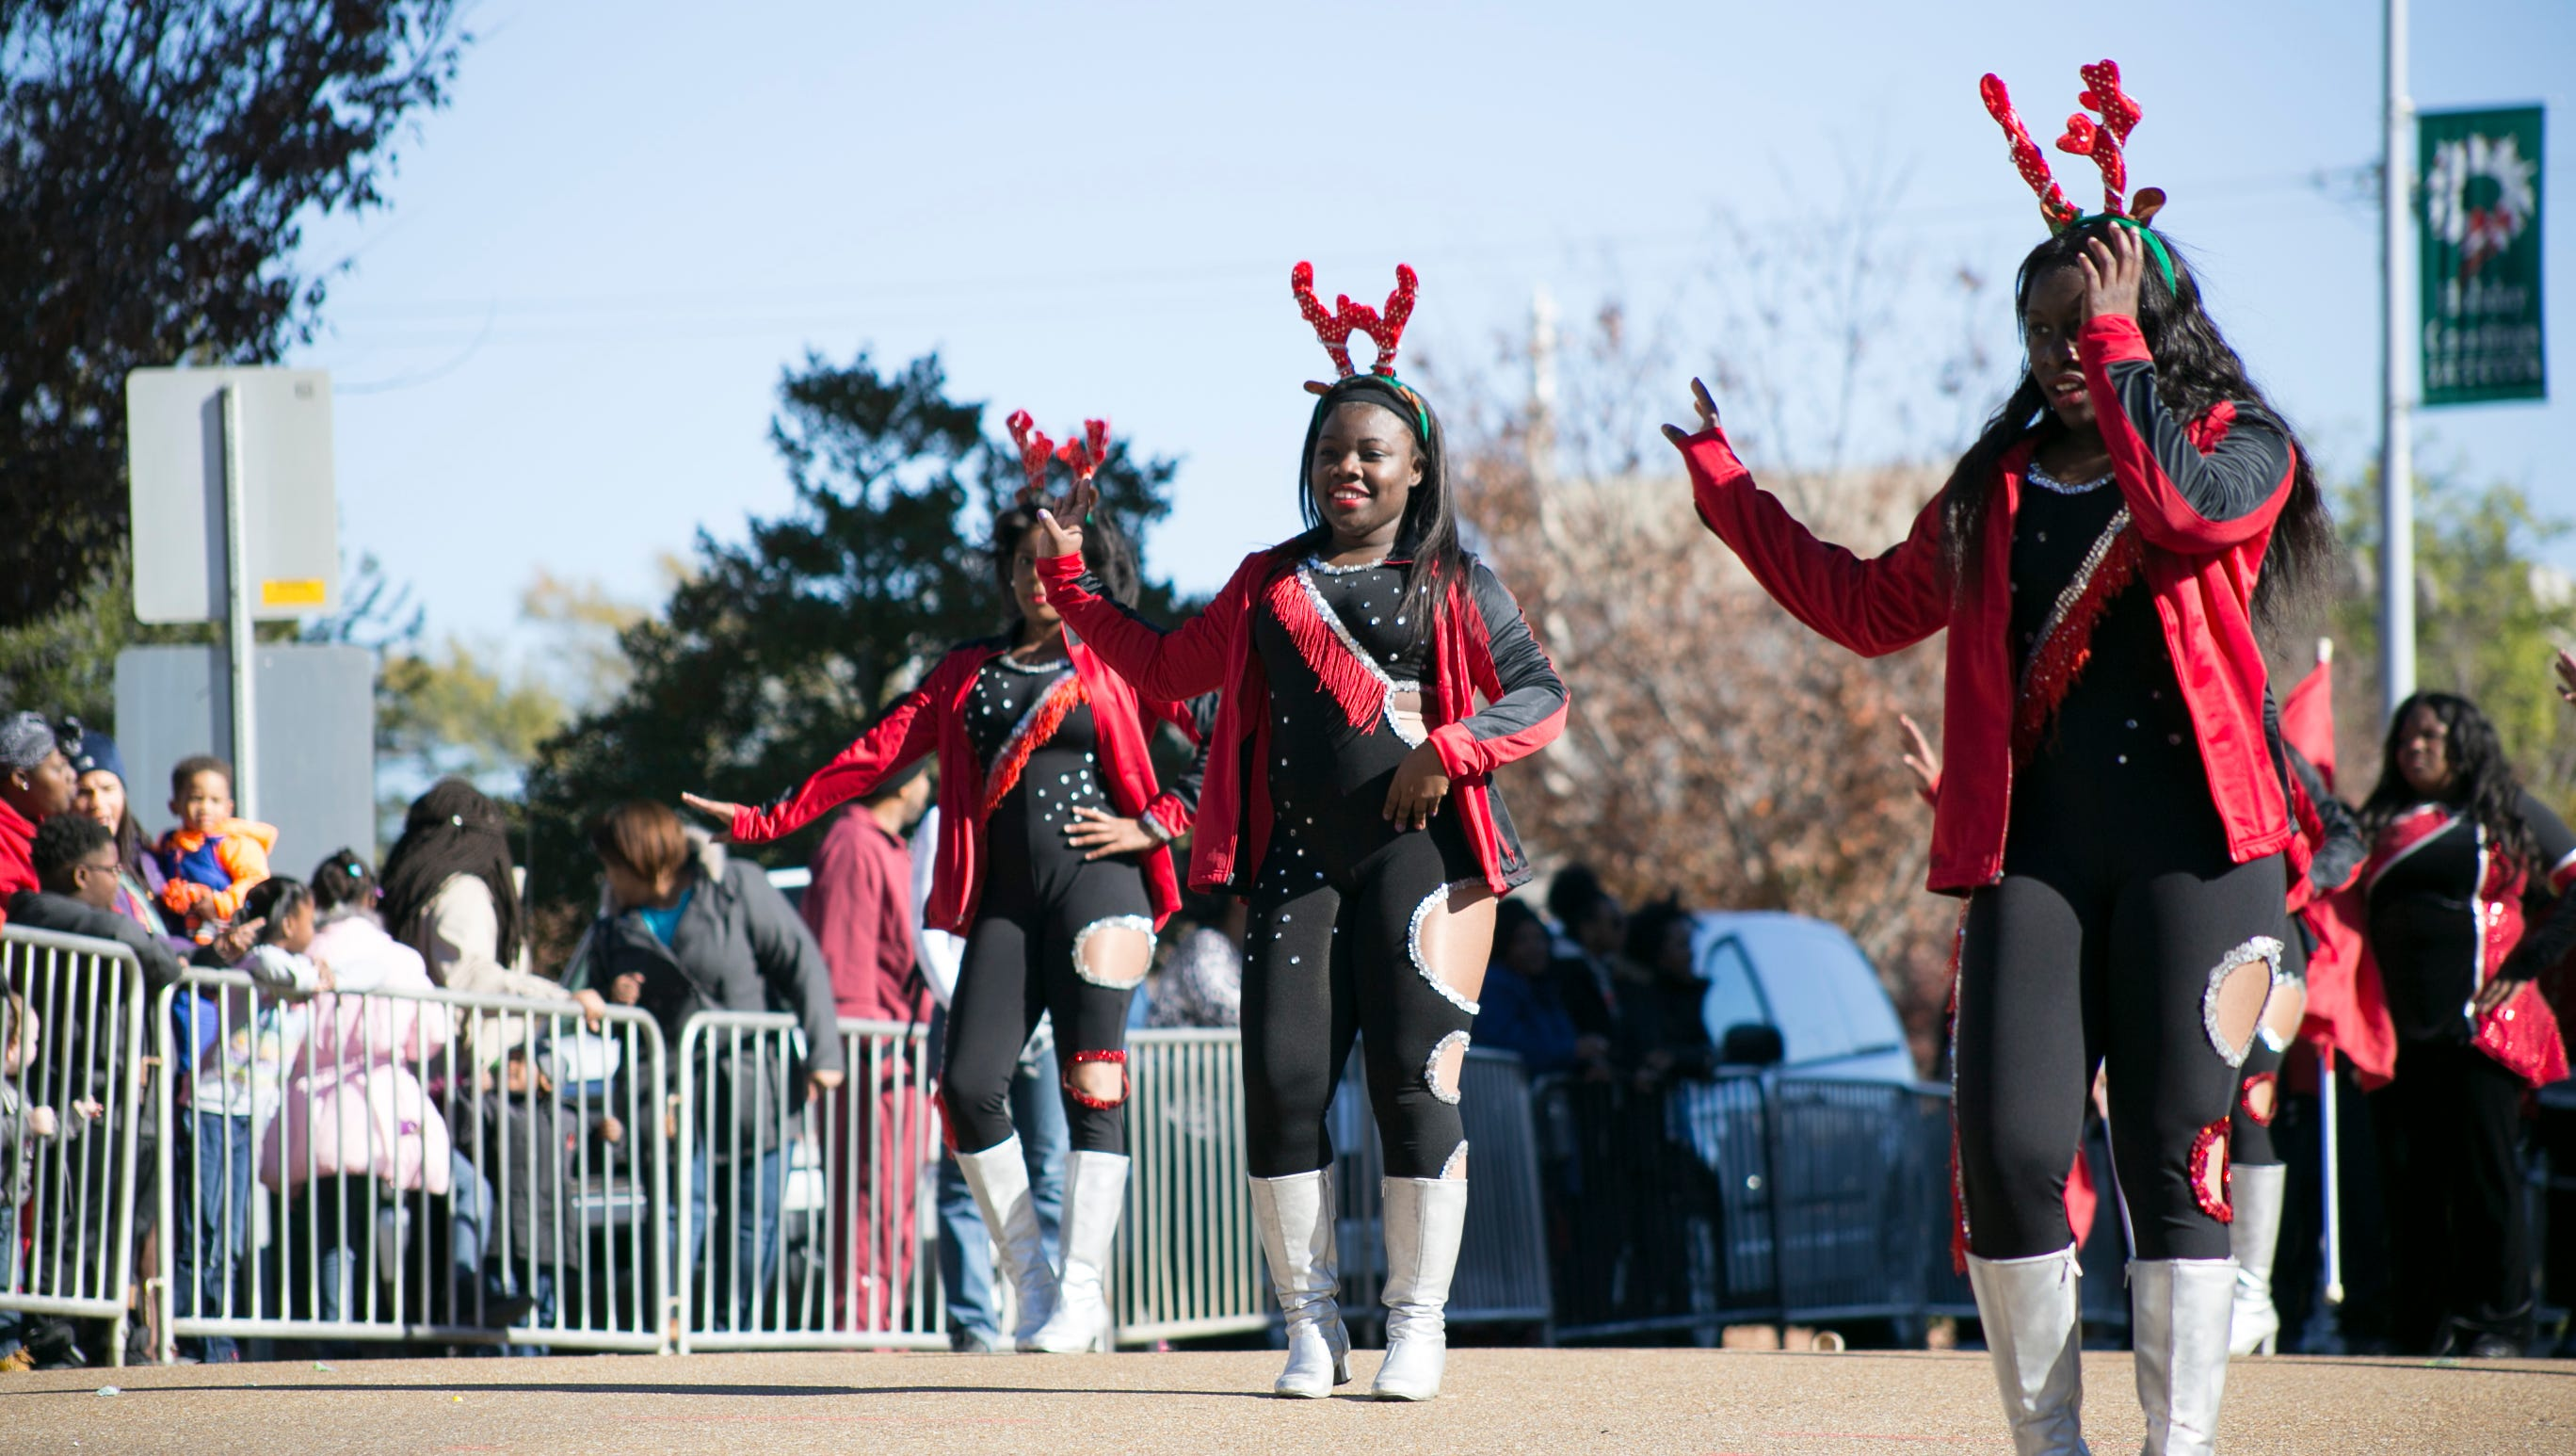 Christmas Parade Route 2020 Jackson Ms Jackson's Christmas Parade: Here's what you need to know